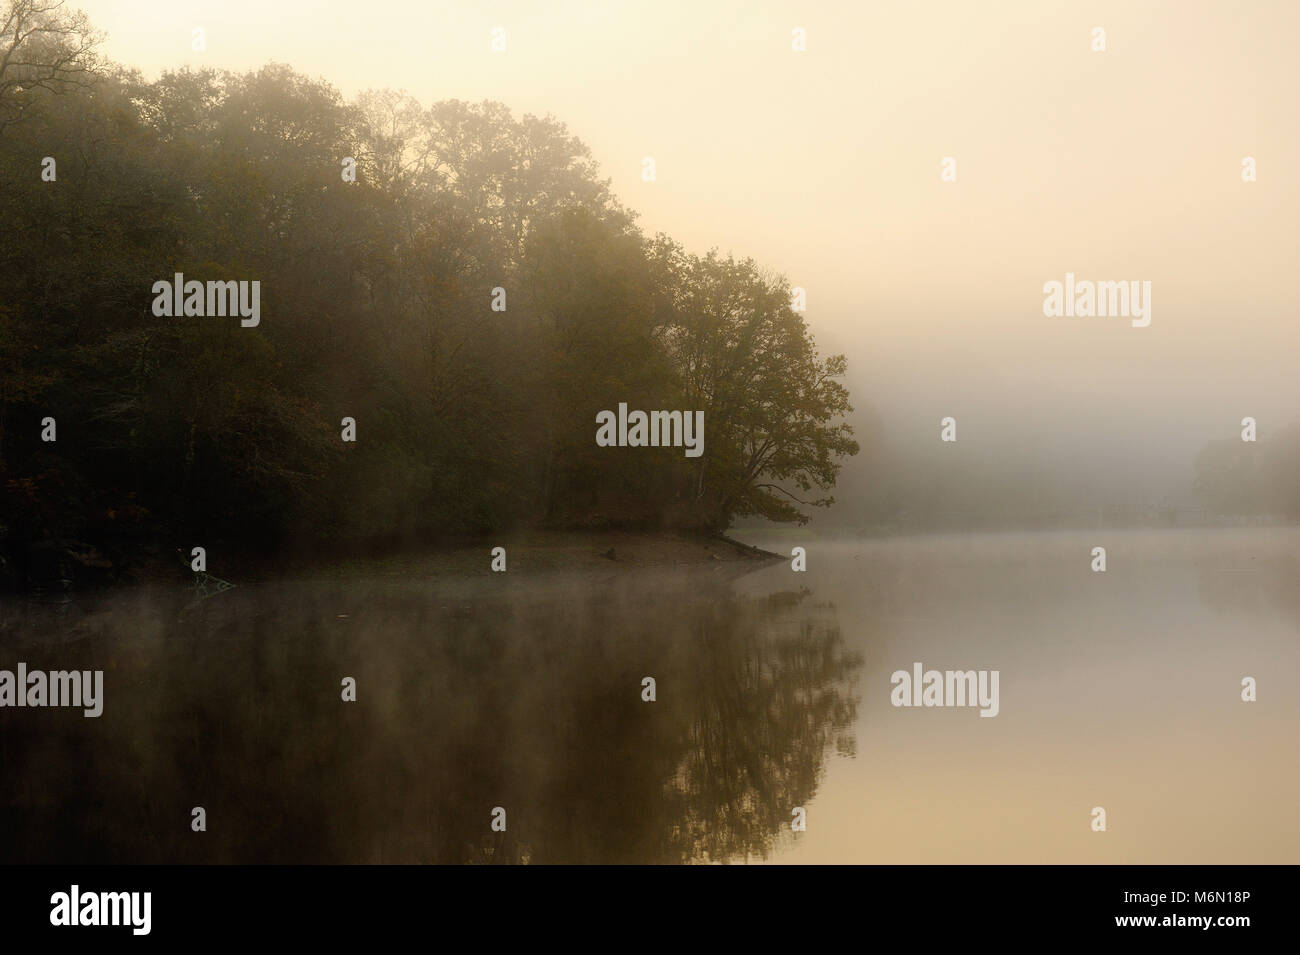 Paimpont, also known as the Forest of Broceliande: the Blue Pond (pond of Paimpont) - Stock Image